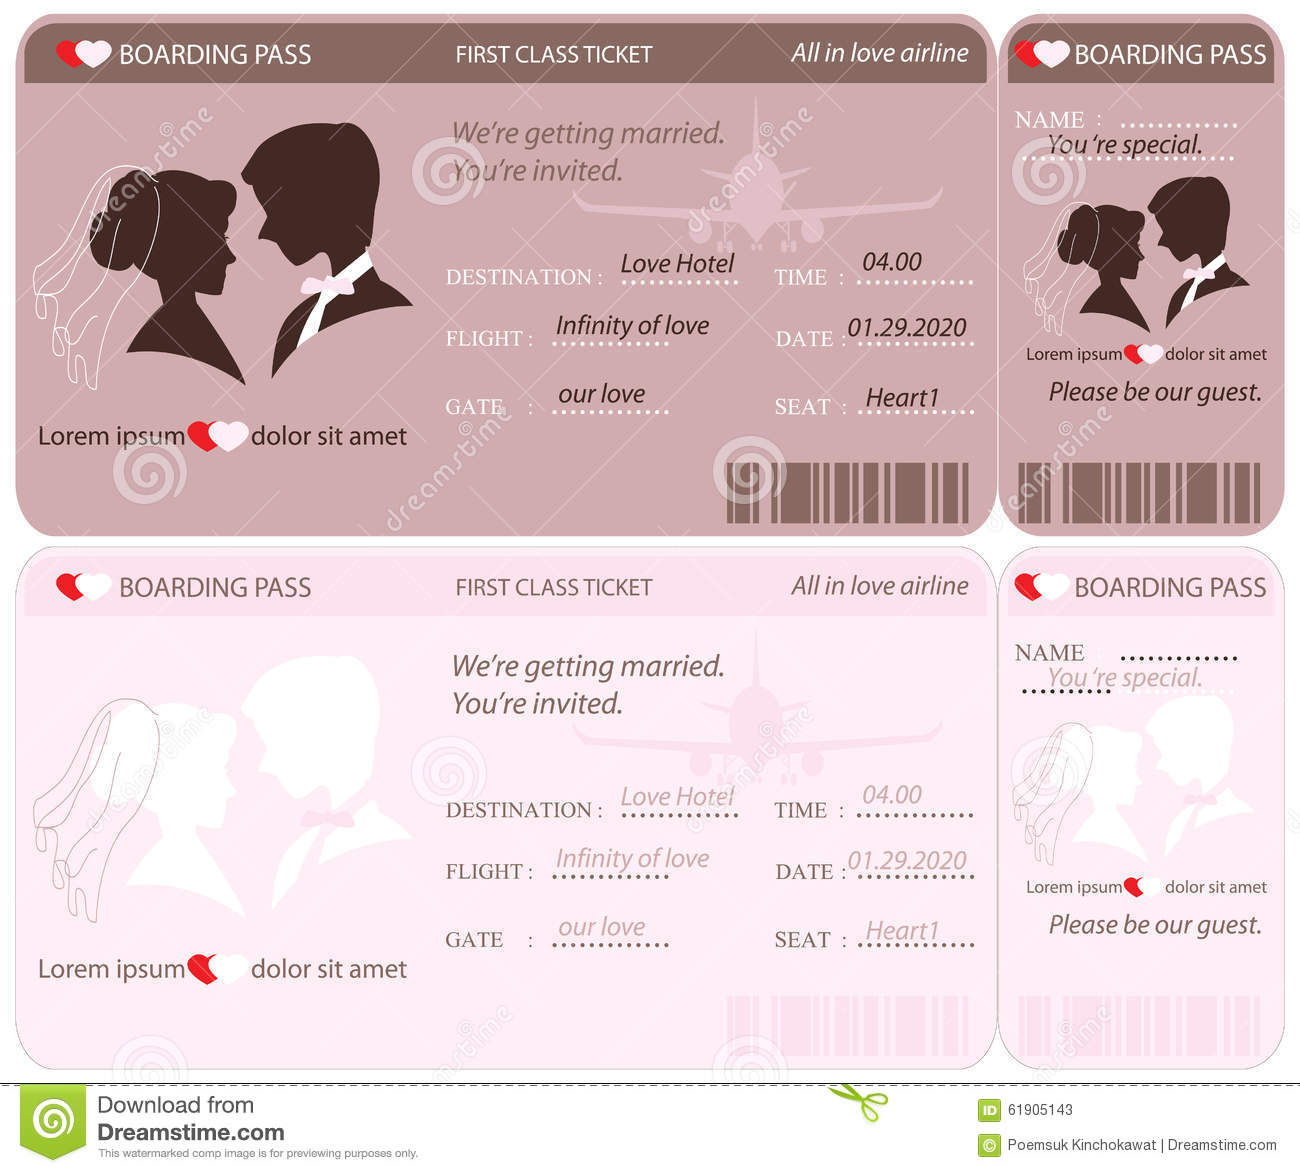 Boarding Pass Ticket Wedding Invitation Template. Stock Vector    Illustration Of Invite, Heart .  Plane Ticket Invitation Template